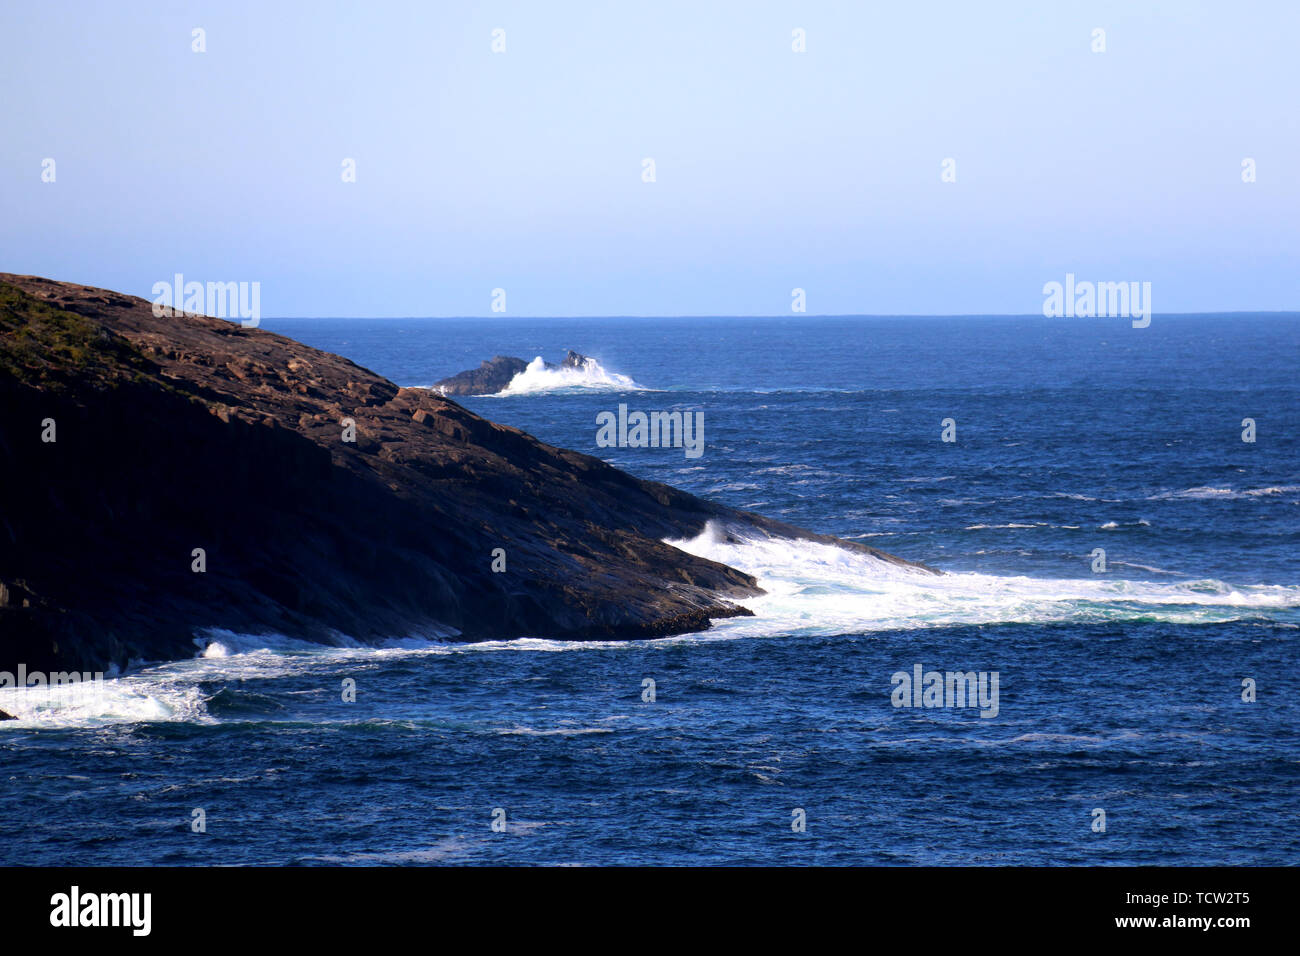 A choppy bay. Stock Photo